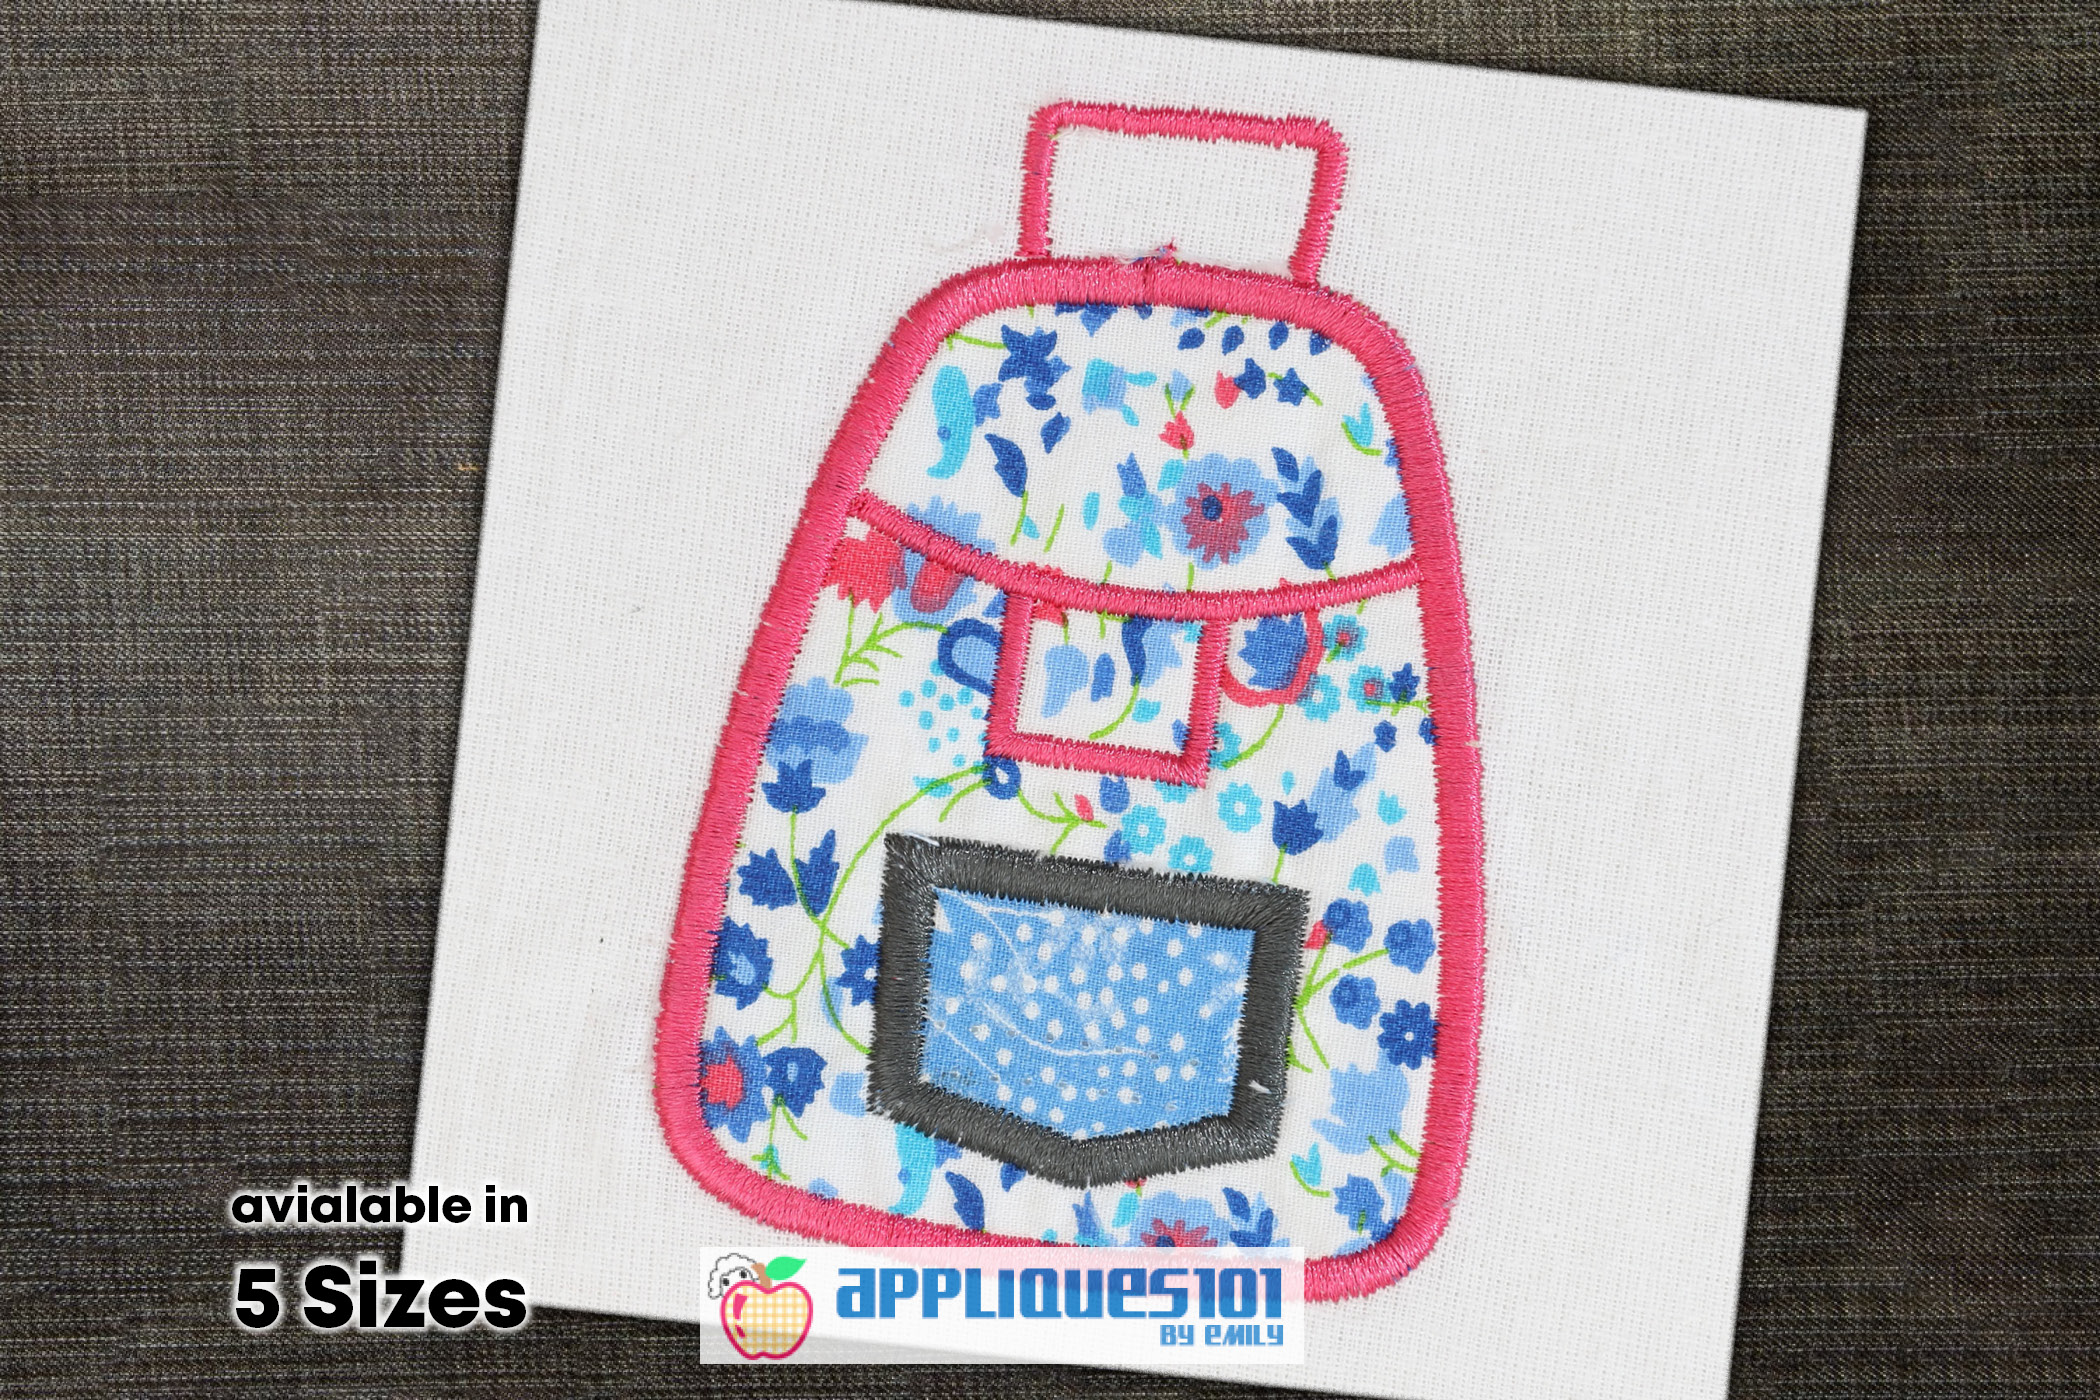 Hand Bag Machine Embroidery Applique Design - Bags example image 1